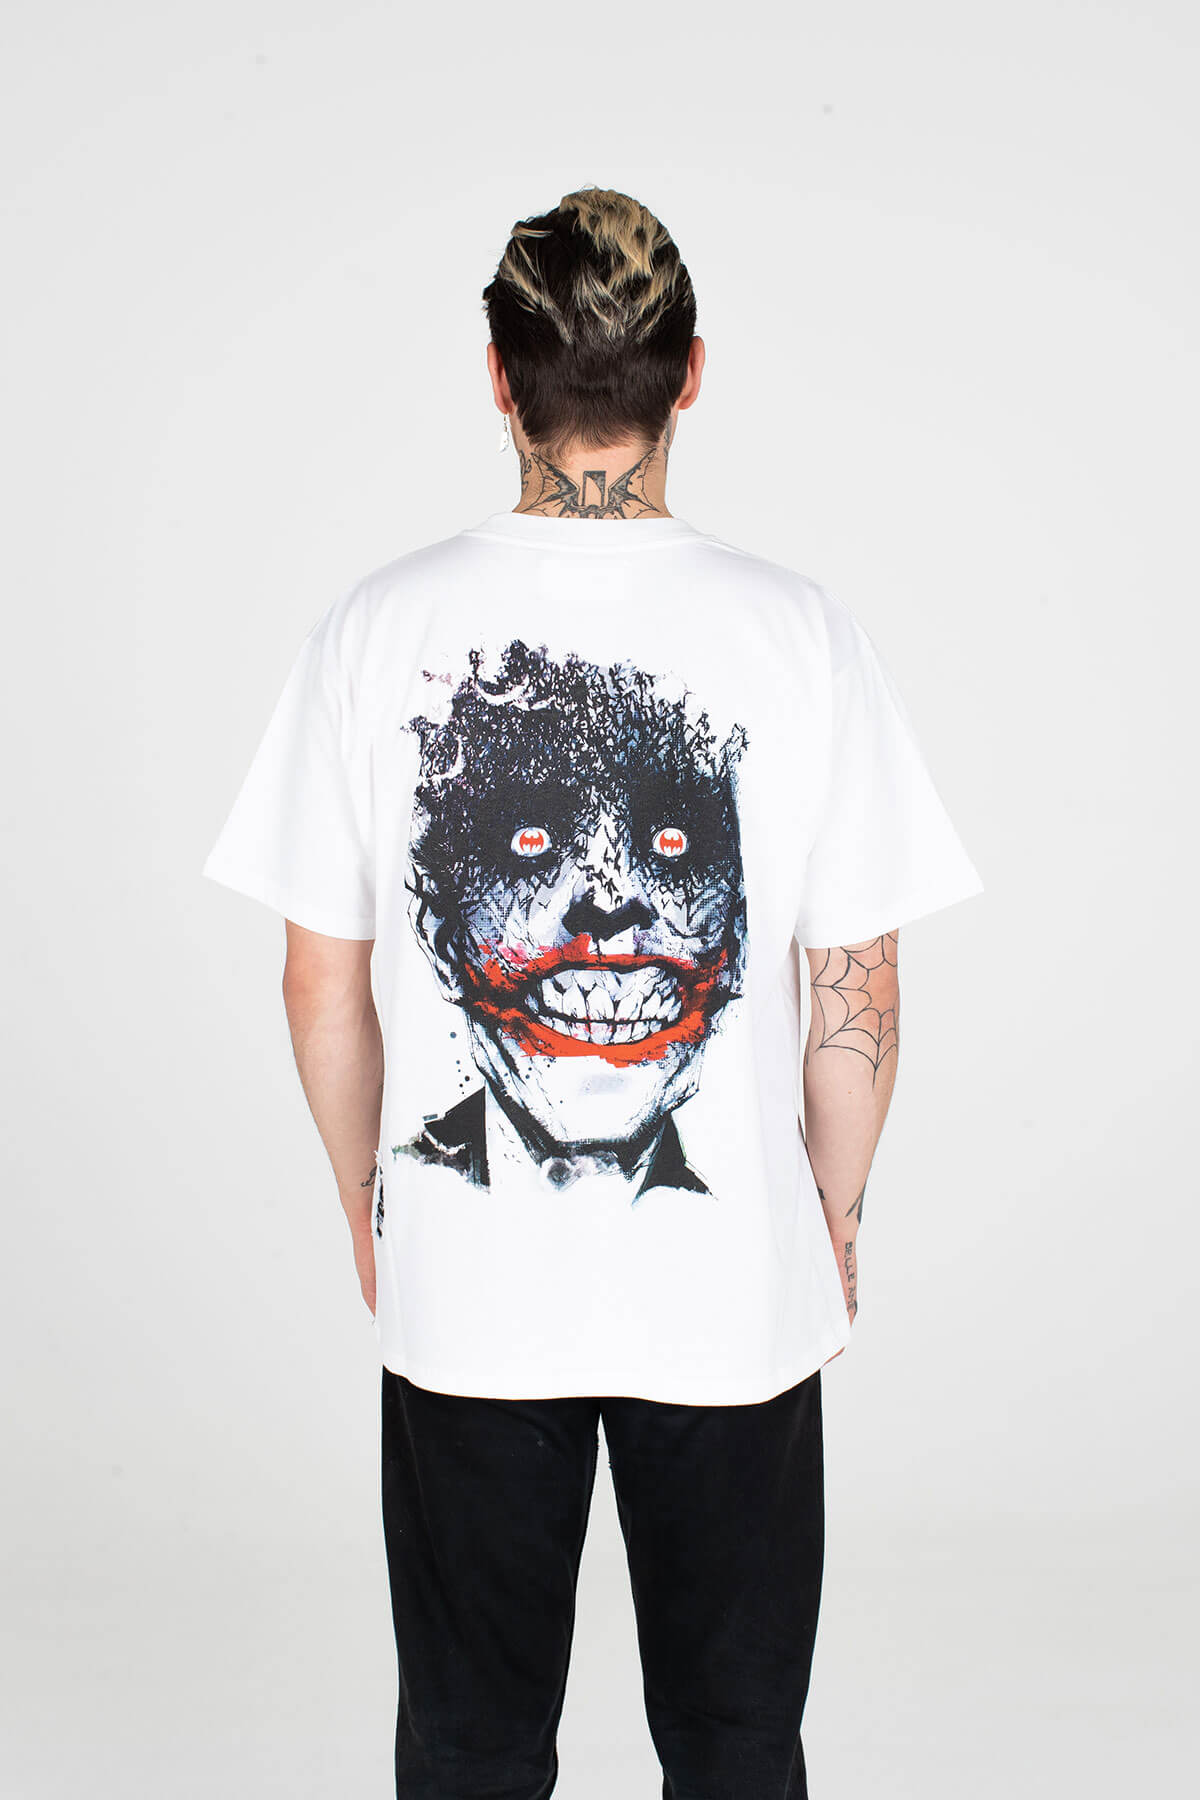 BATMAN X MJB FESTIVAL T SHIRT JOKER WHITE JOCK - TOP - MJB